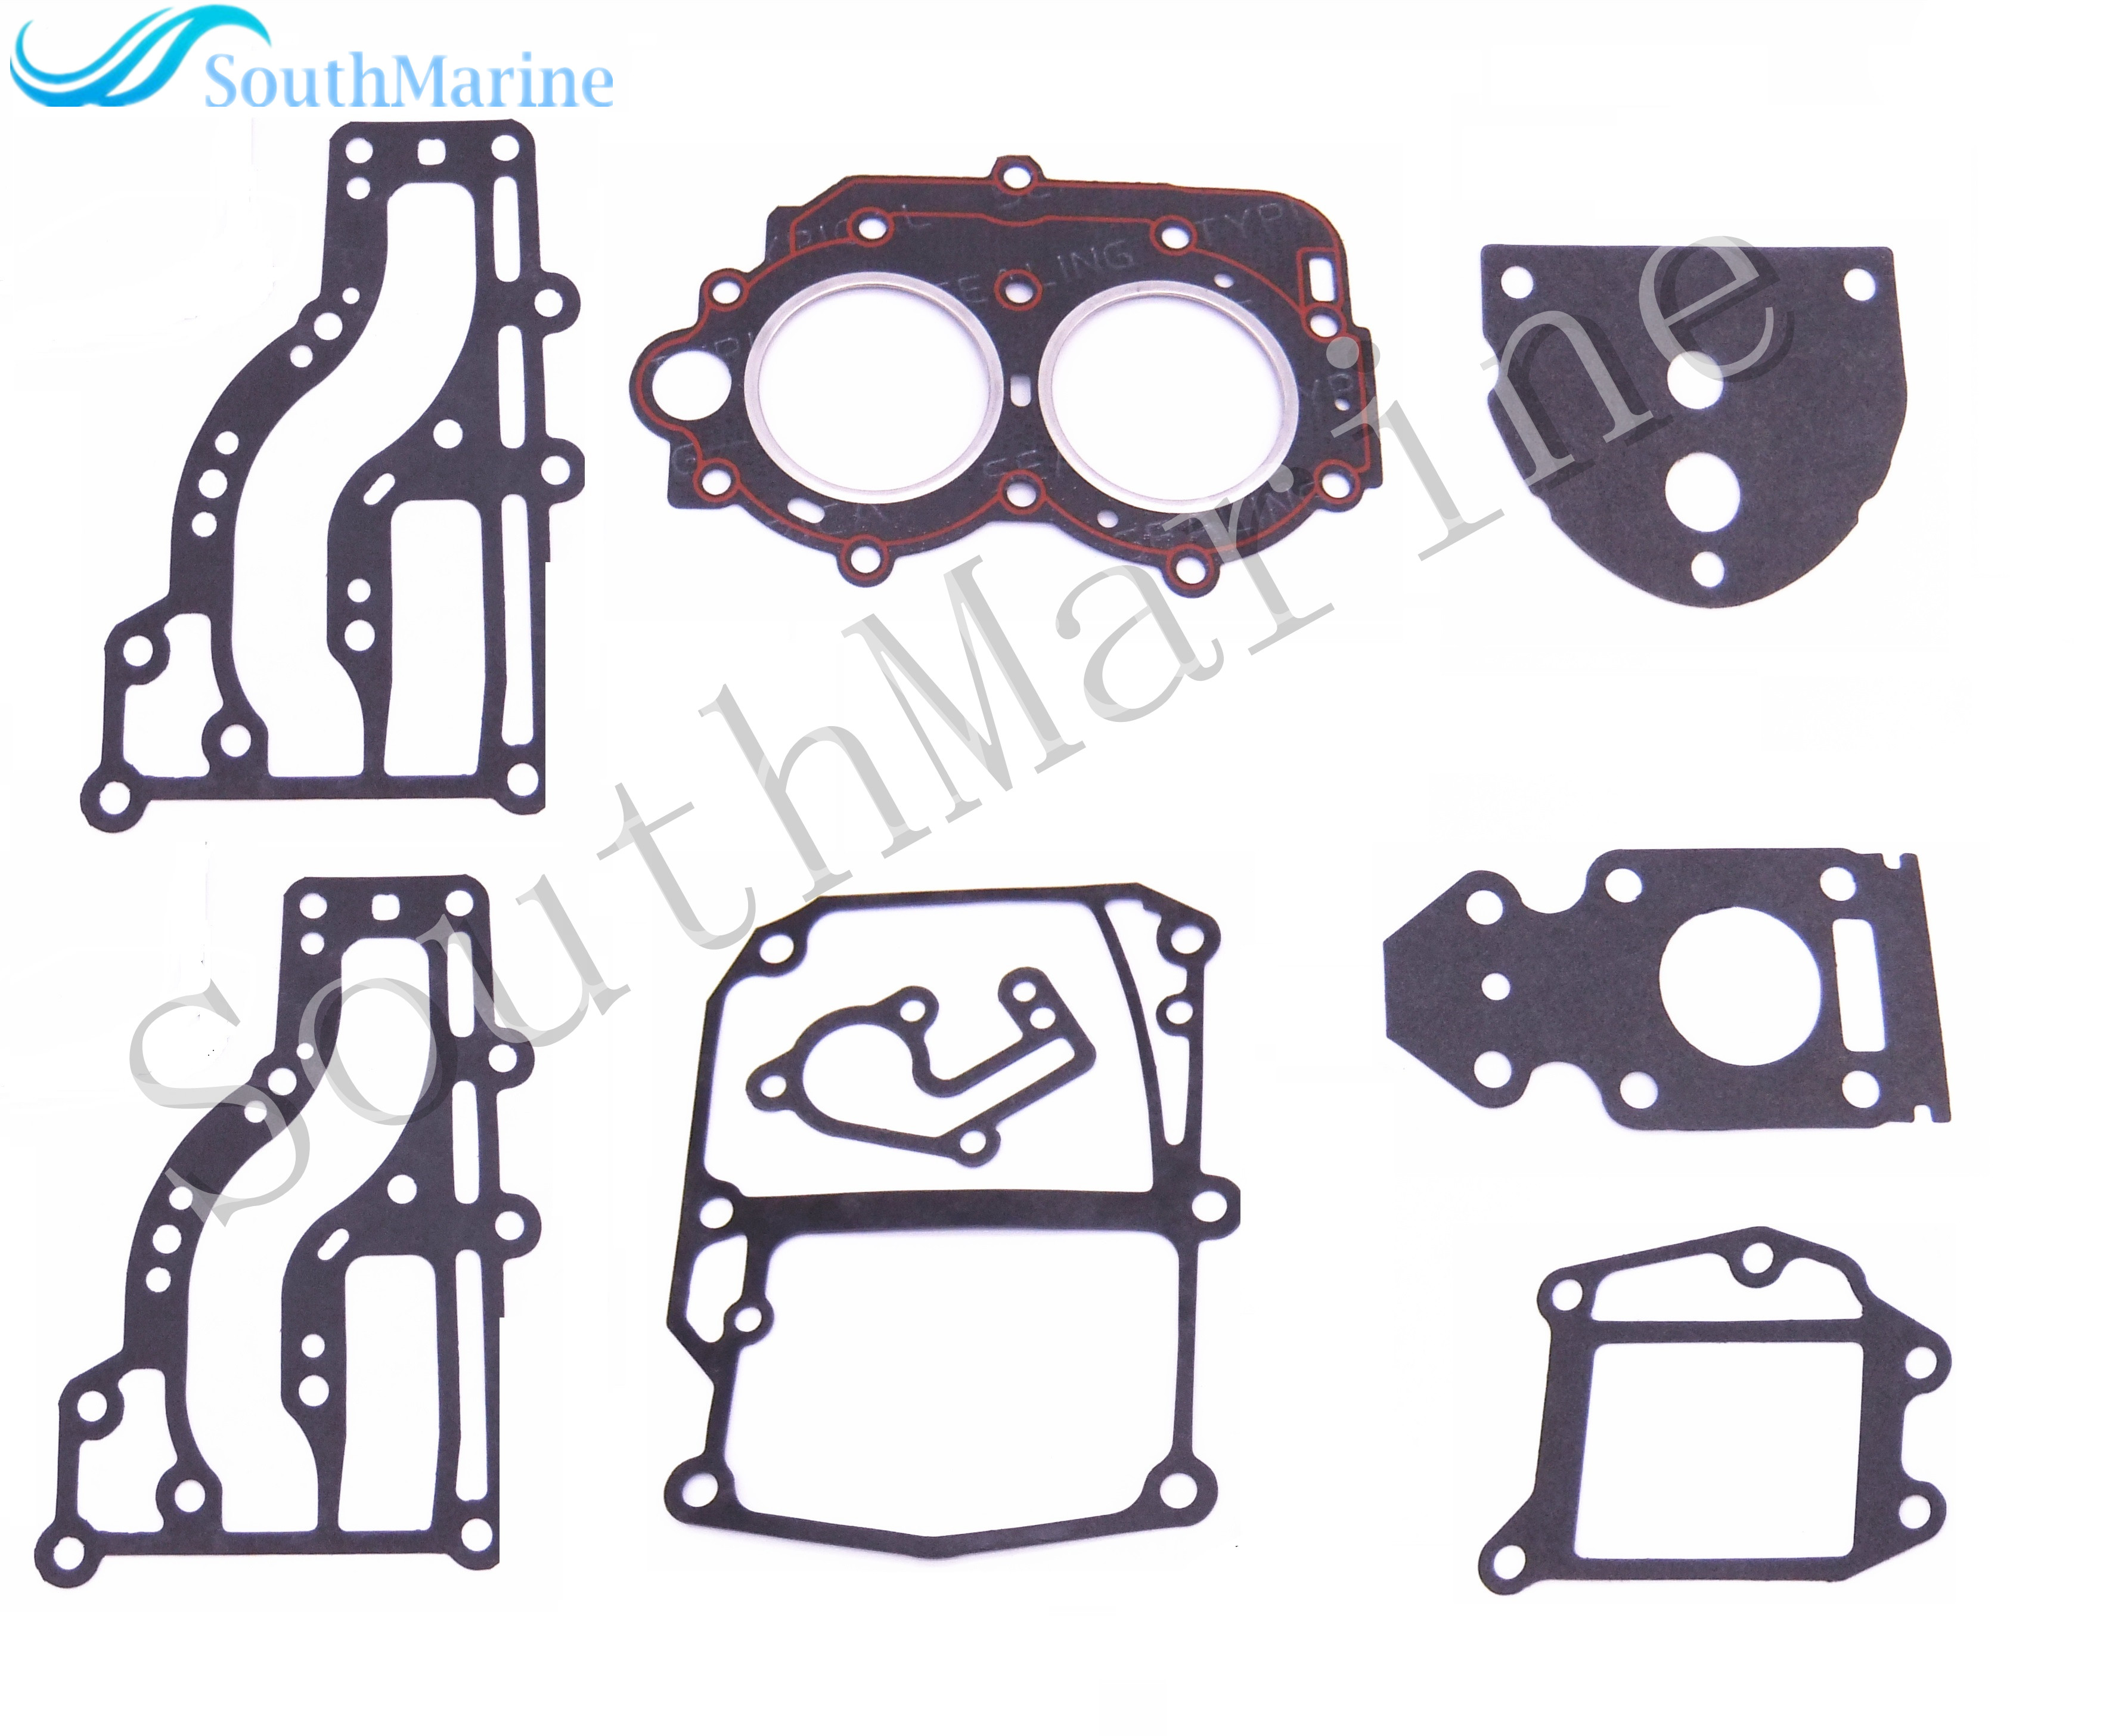 Outboard Motors Power Complete Head Seal Gasket Kit for Parsun T9.9 T15 Boat Engines